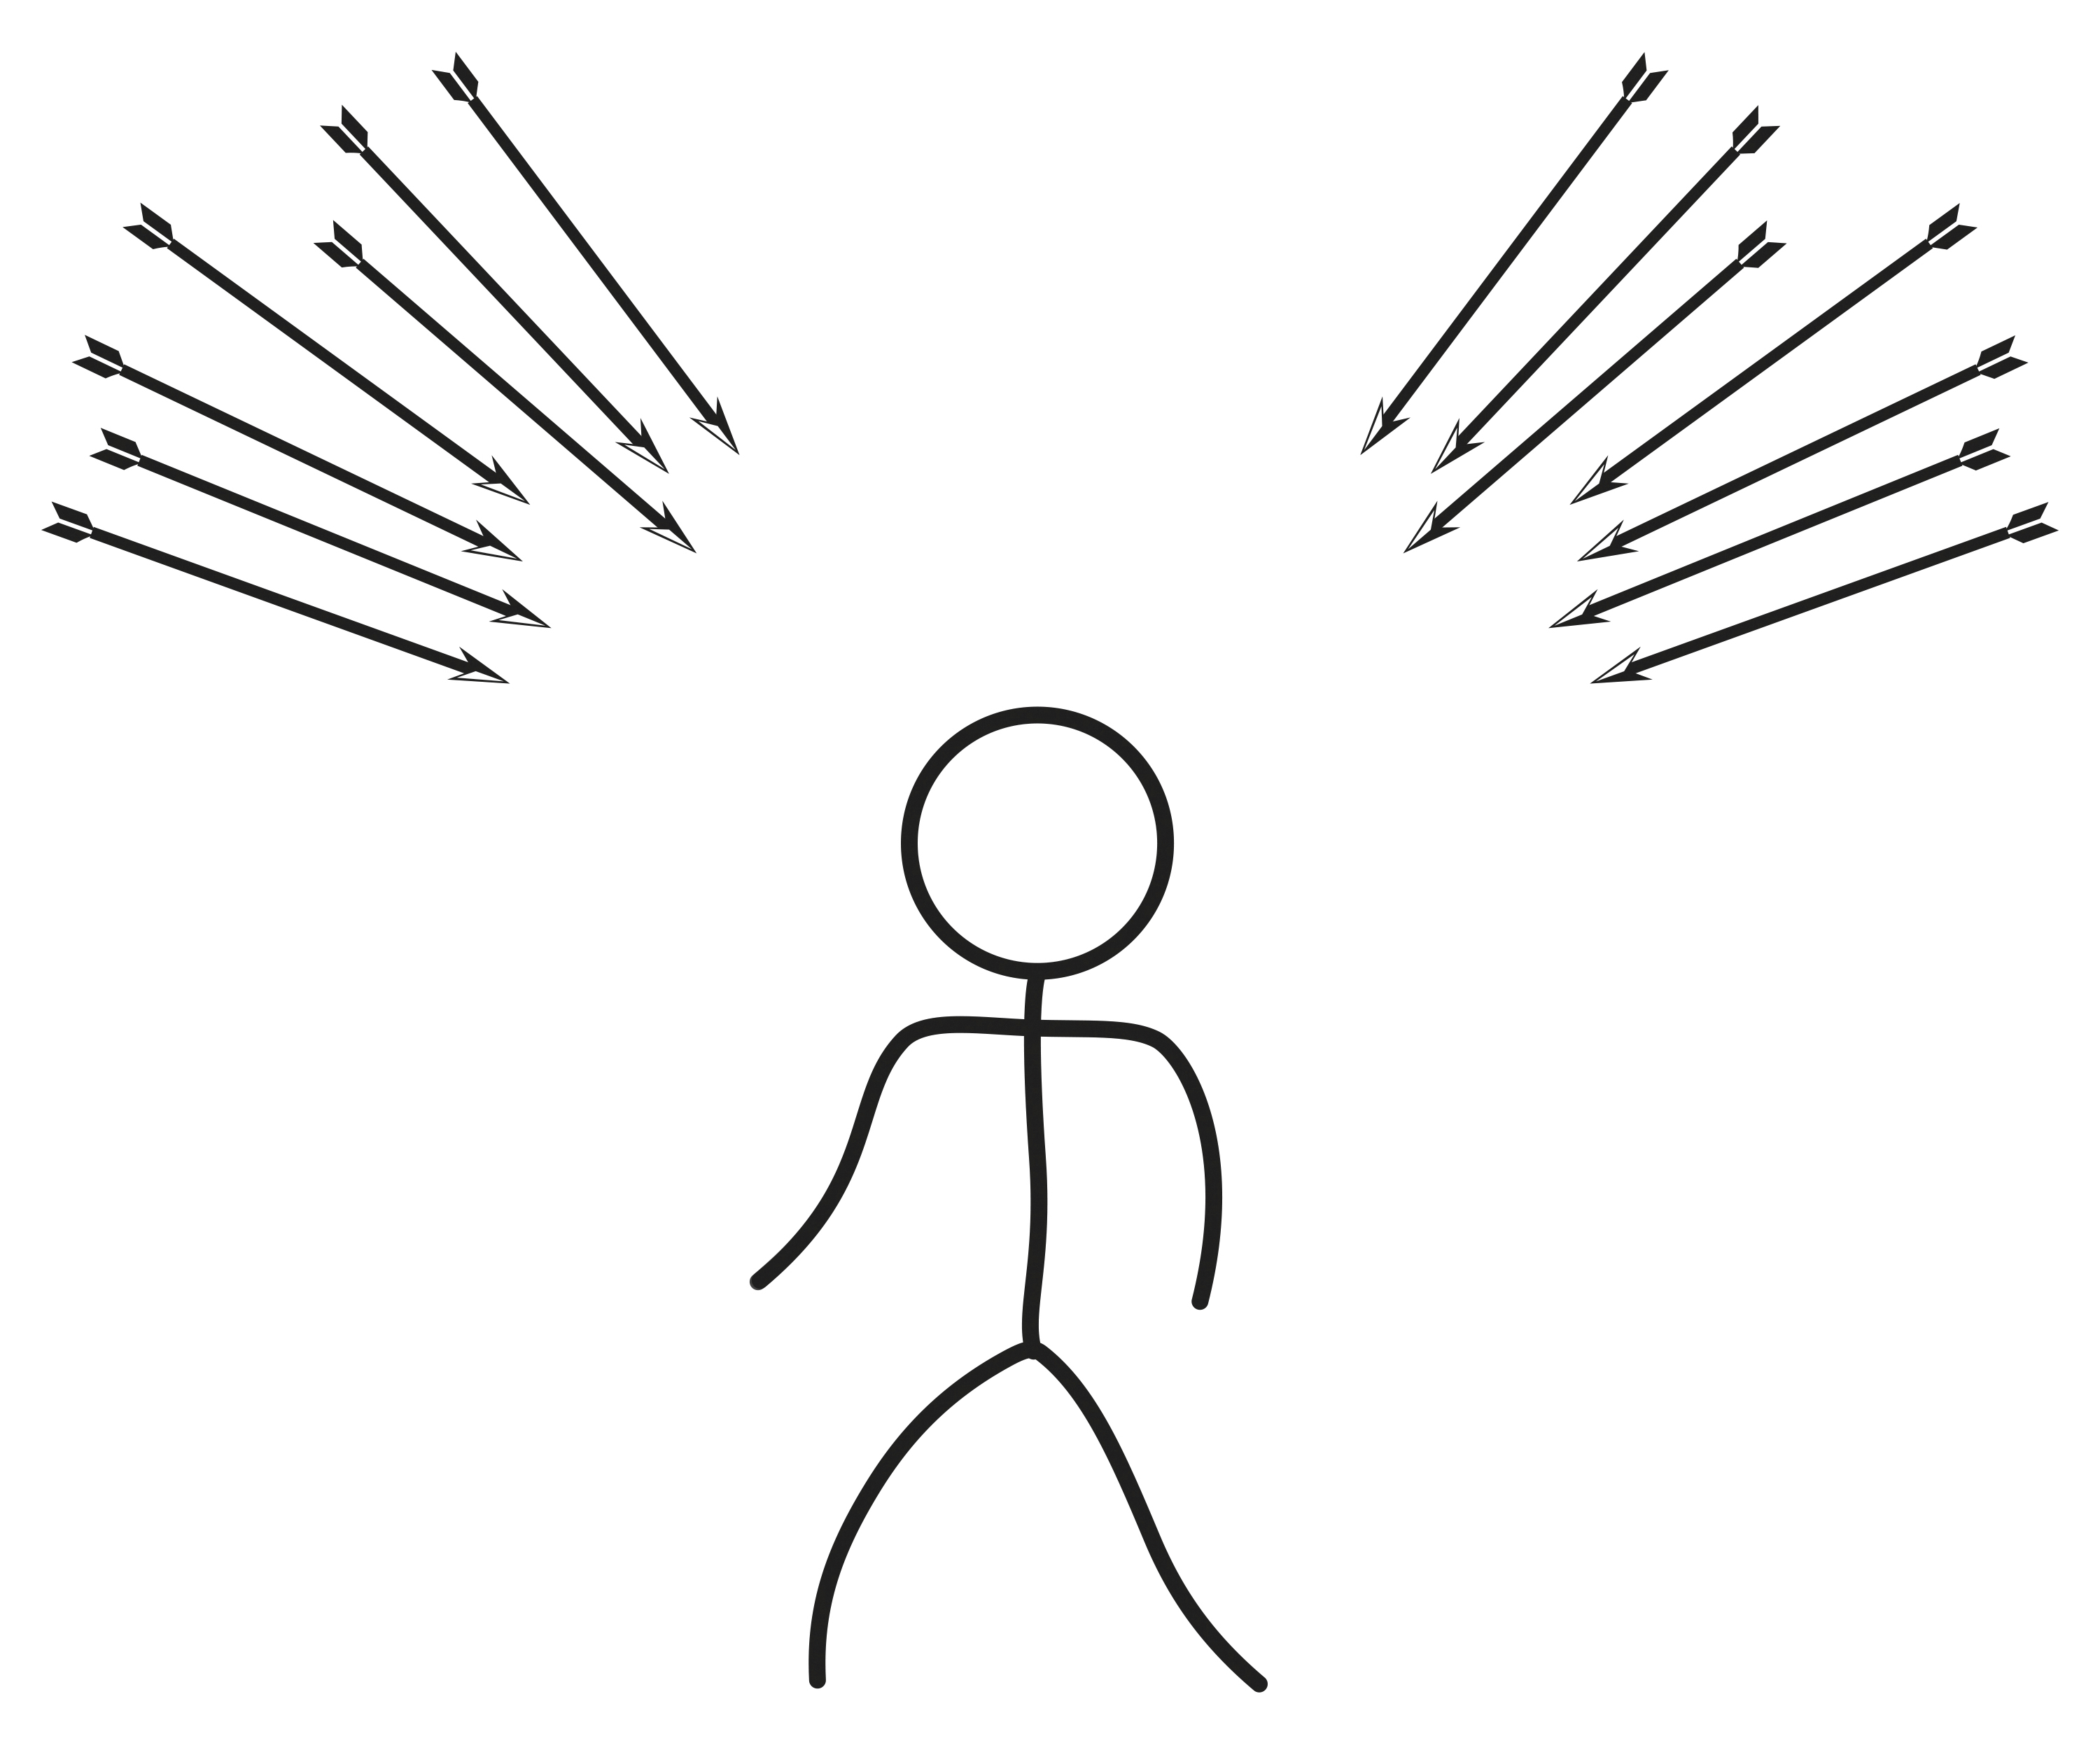 A stick figure drawing of a person surrounded by arrows.